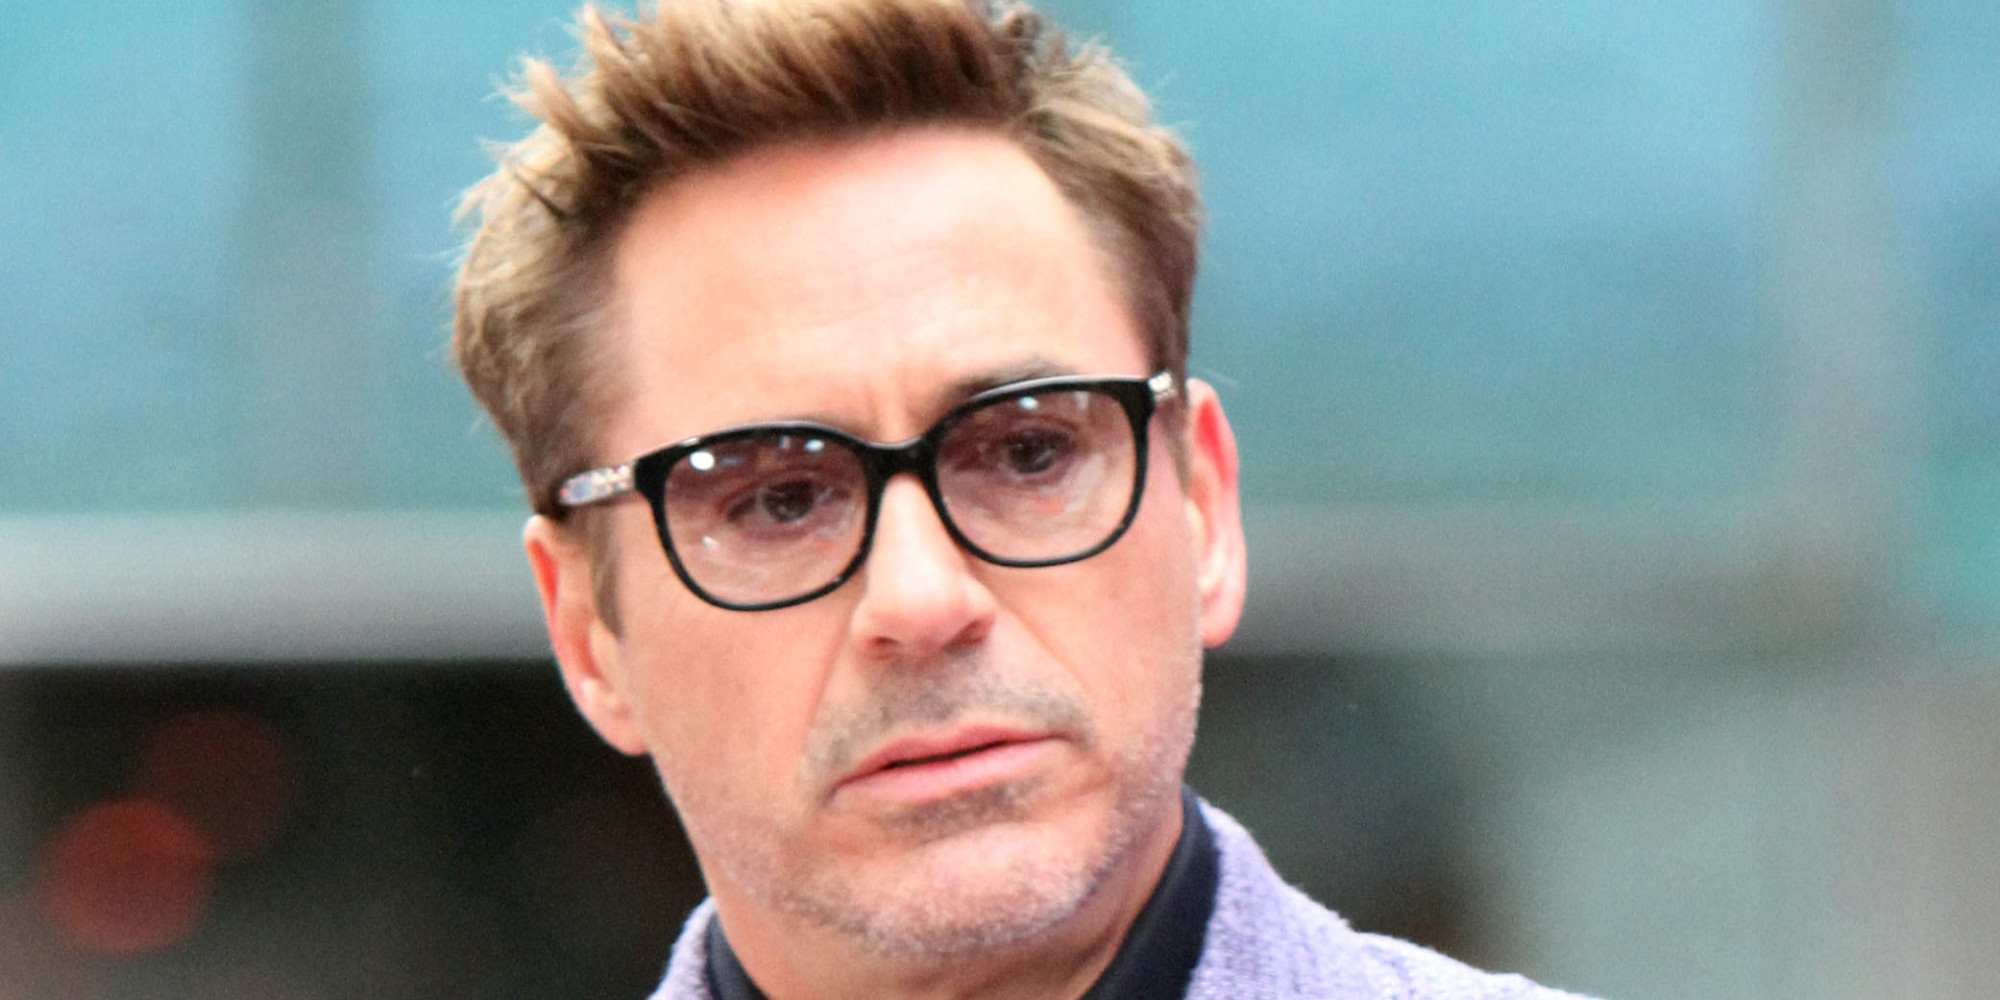 Robert Downey Jr. Wishes He'd Left That Uncomfortable